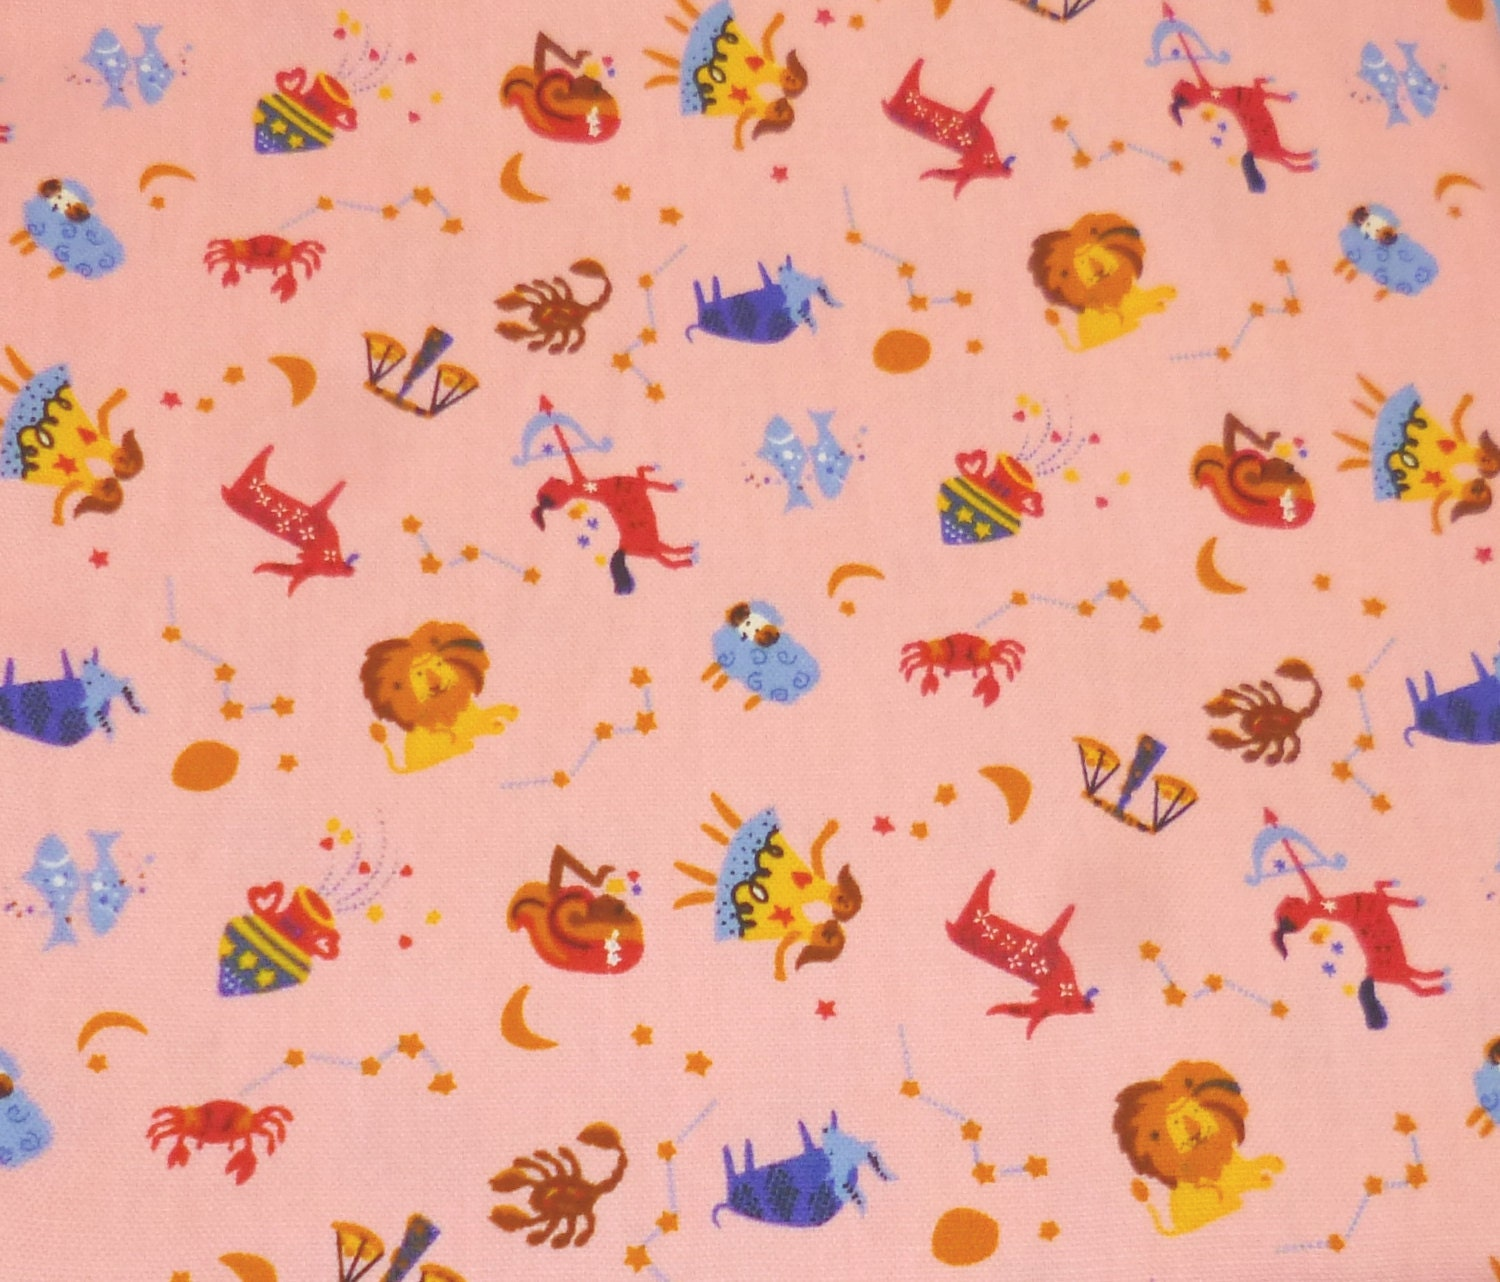 Zodiac signs japanese cotton fabric for Astrology fabric